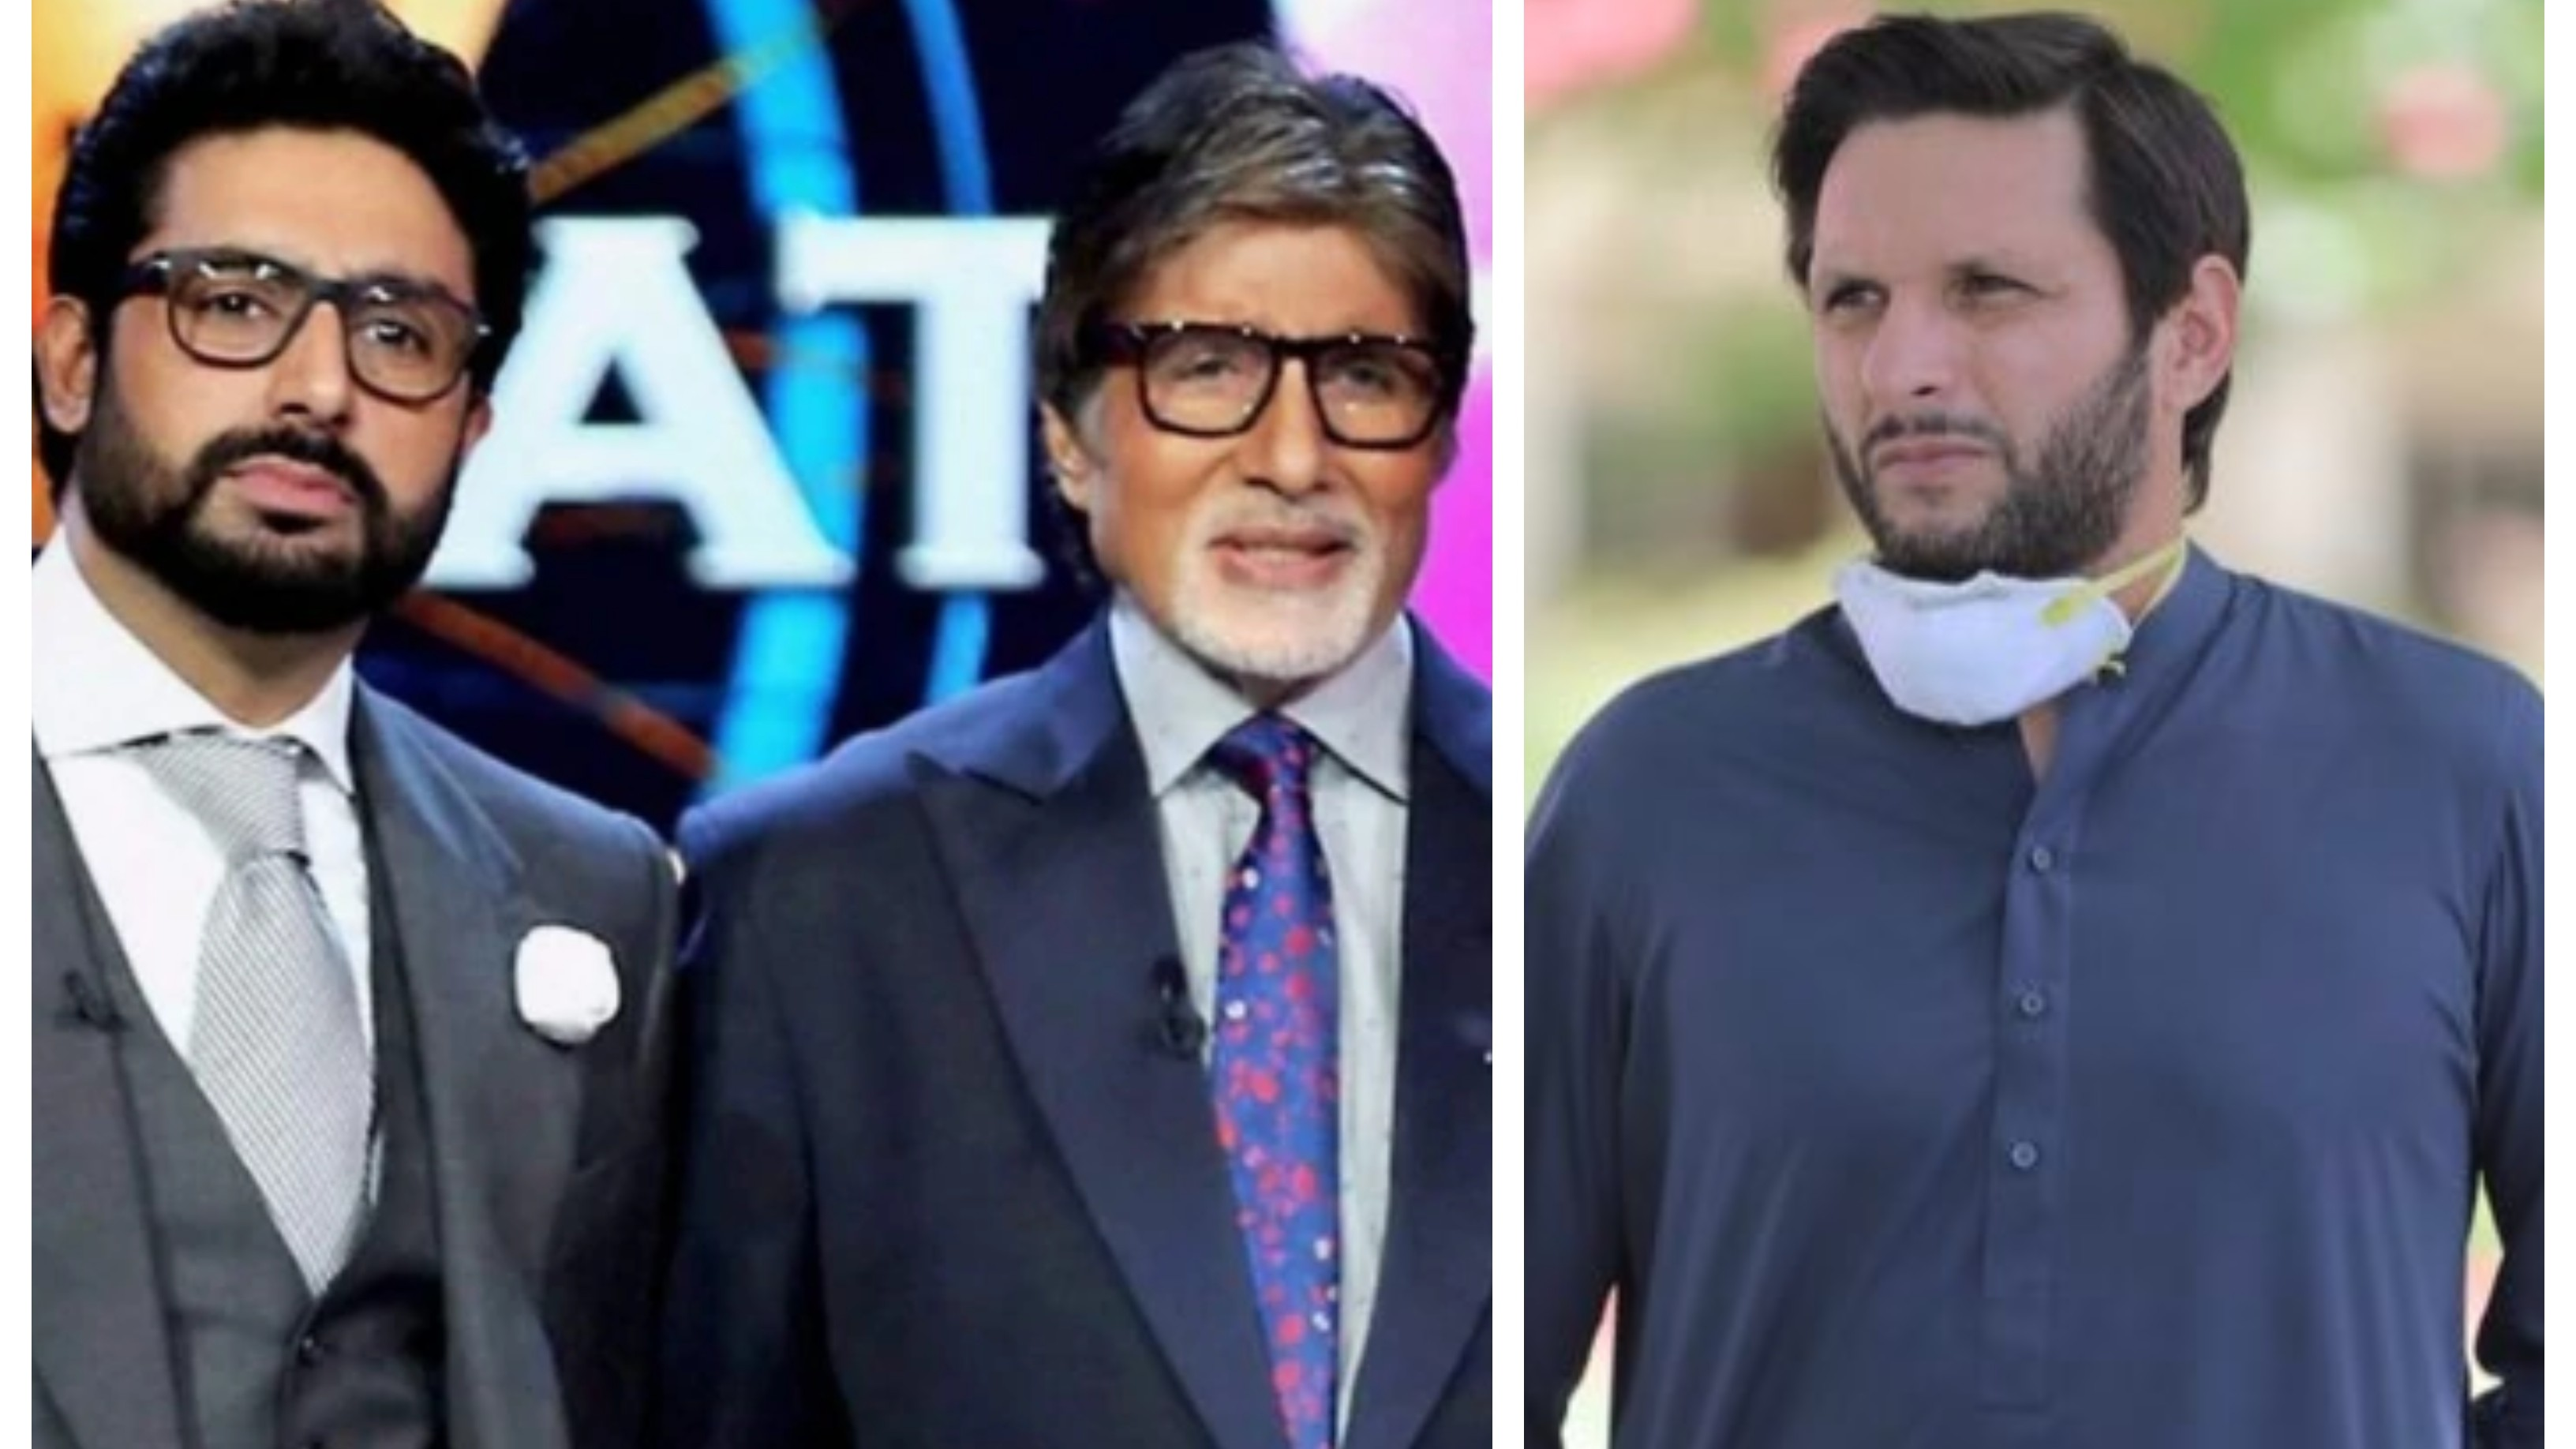 Afridi wishes speedy recovery to Amitabh Bachchan and Abhishek after they test positive for COVID-19